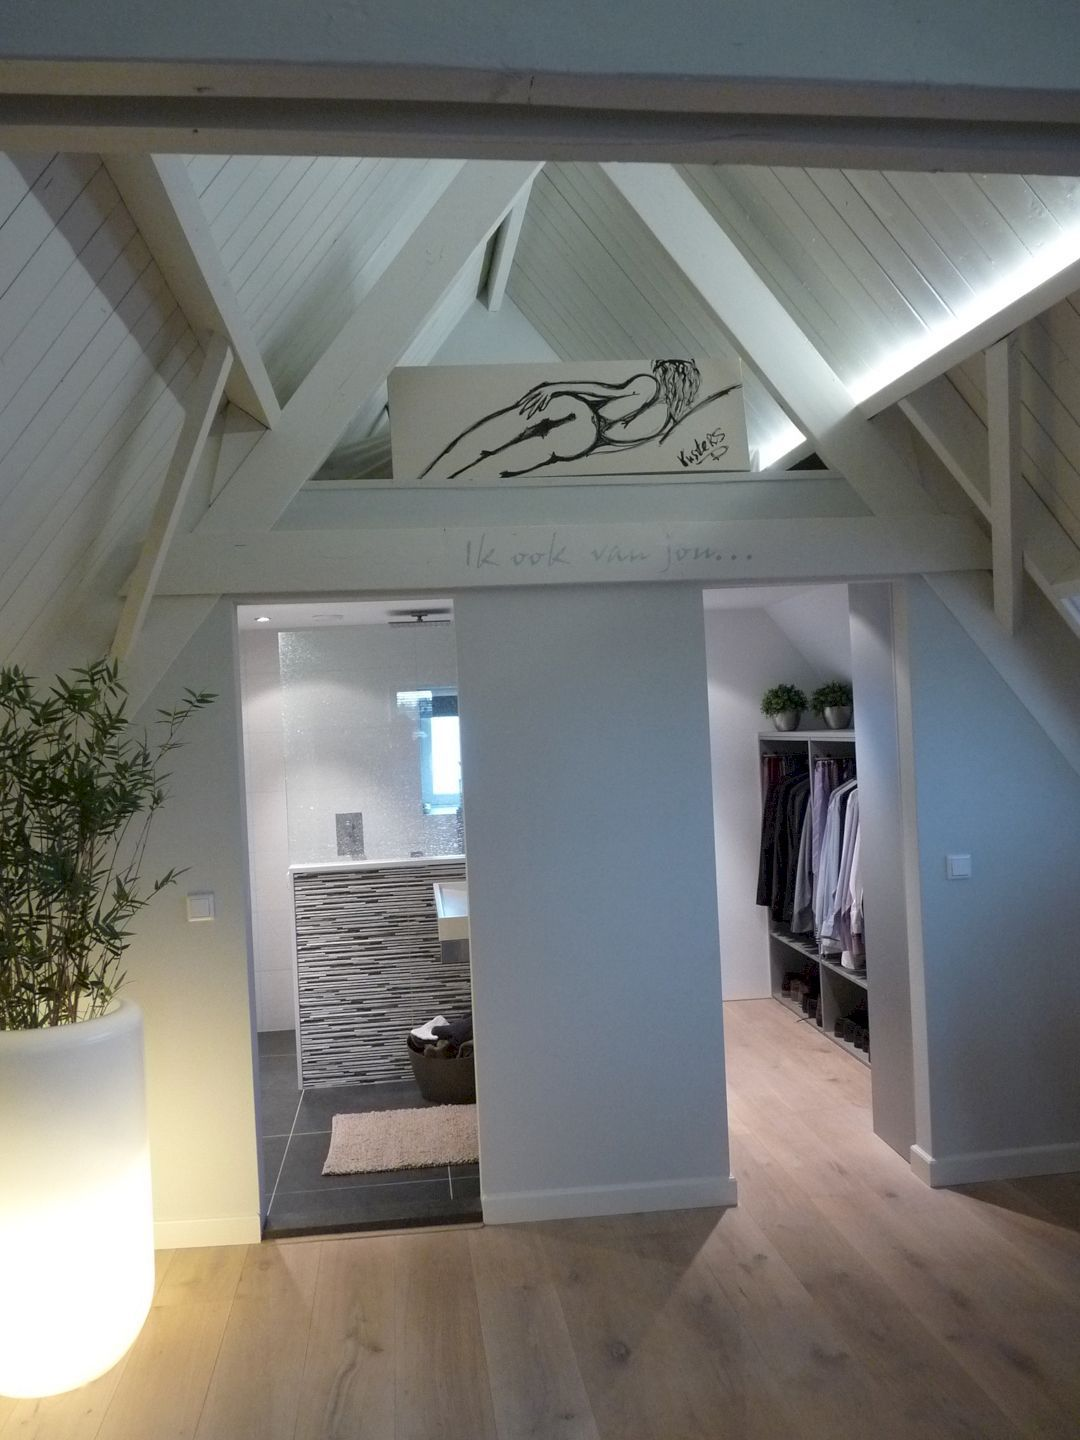 Upstairs loft bedroom ideas  Incredible Loft Bedroom Design Idea   Loft bedrooms Lofts and